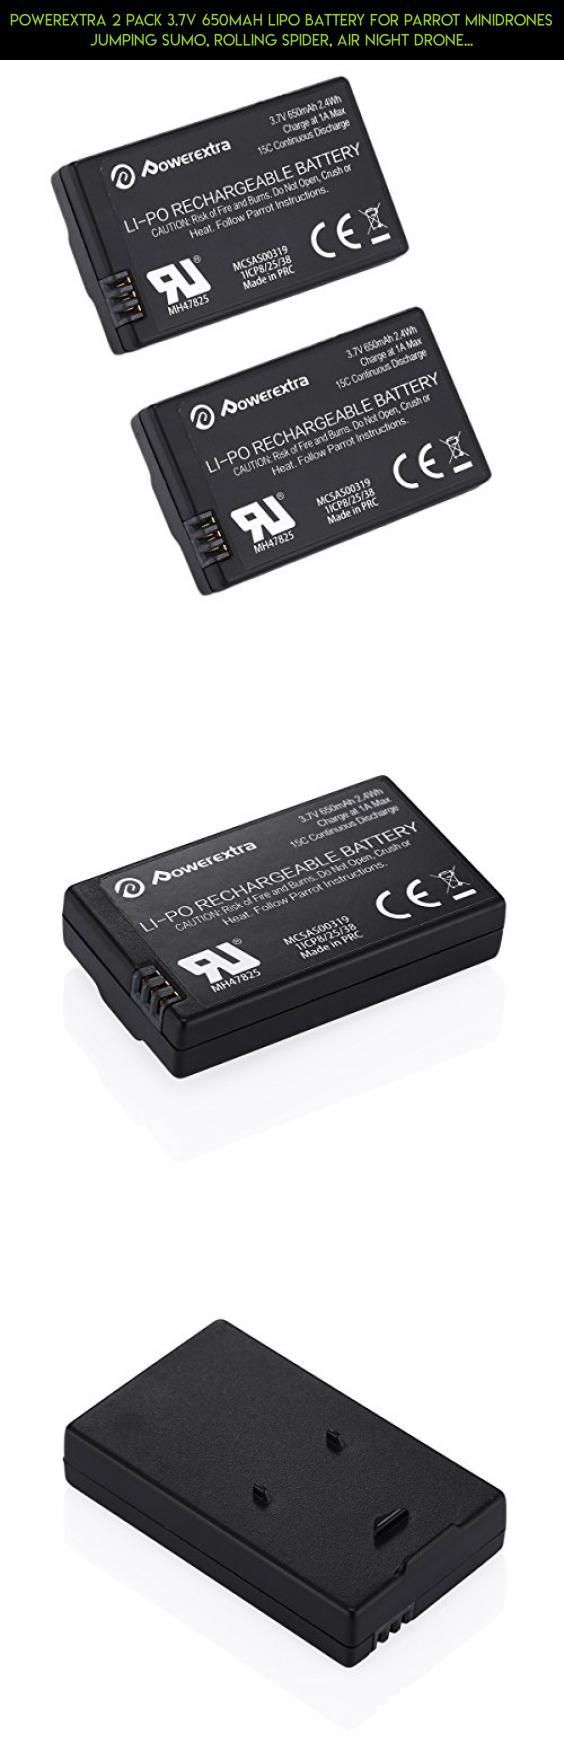 Powerextra 2 Pack 3.7V 650mAh LiPo Battery for Parrot MiniDrones Jumping Sumo, Rolling Spider, Air Night Drone, Airborne Cargo Drone, Jumping Race Drone, Night Hydrofoil Drone - Upgrade #gadgets #tech #fpv #technology #mini #parrot #kit #camera #drone #racing #shopping #products #drone #battery #parts #plans